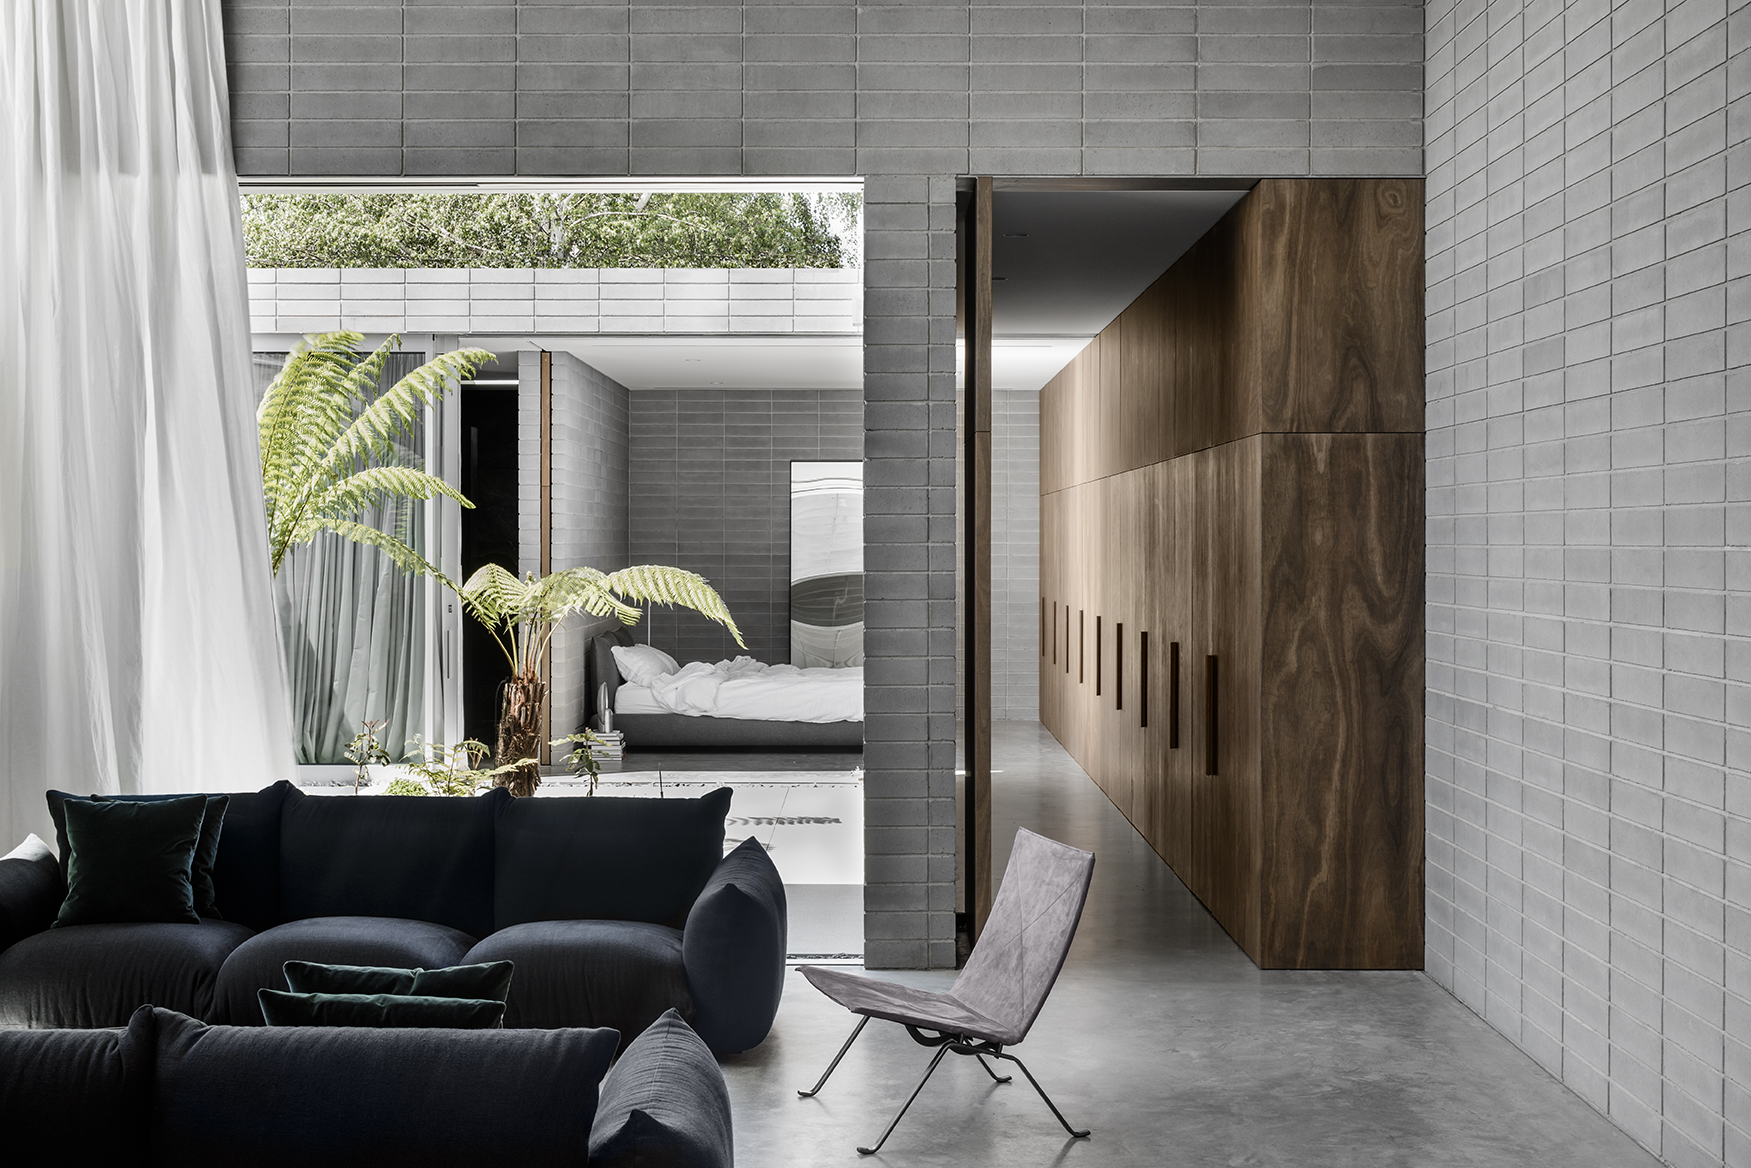 """The Highbury Grove House by Ritz & Ghougassian was awarded a Commendation at the Australian Interior Design Awards, the design practice described by the jury as, """"refined, architecturally rigorous and notable for its strong adherence to a set of shared design values"""", Photo Tom Blachford."""